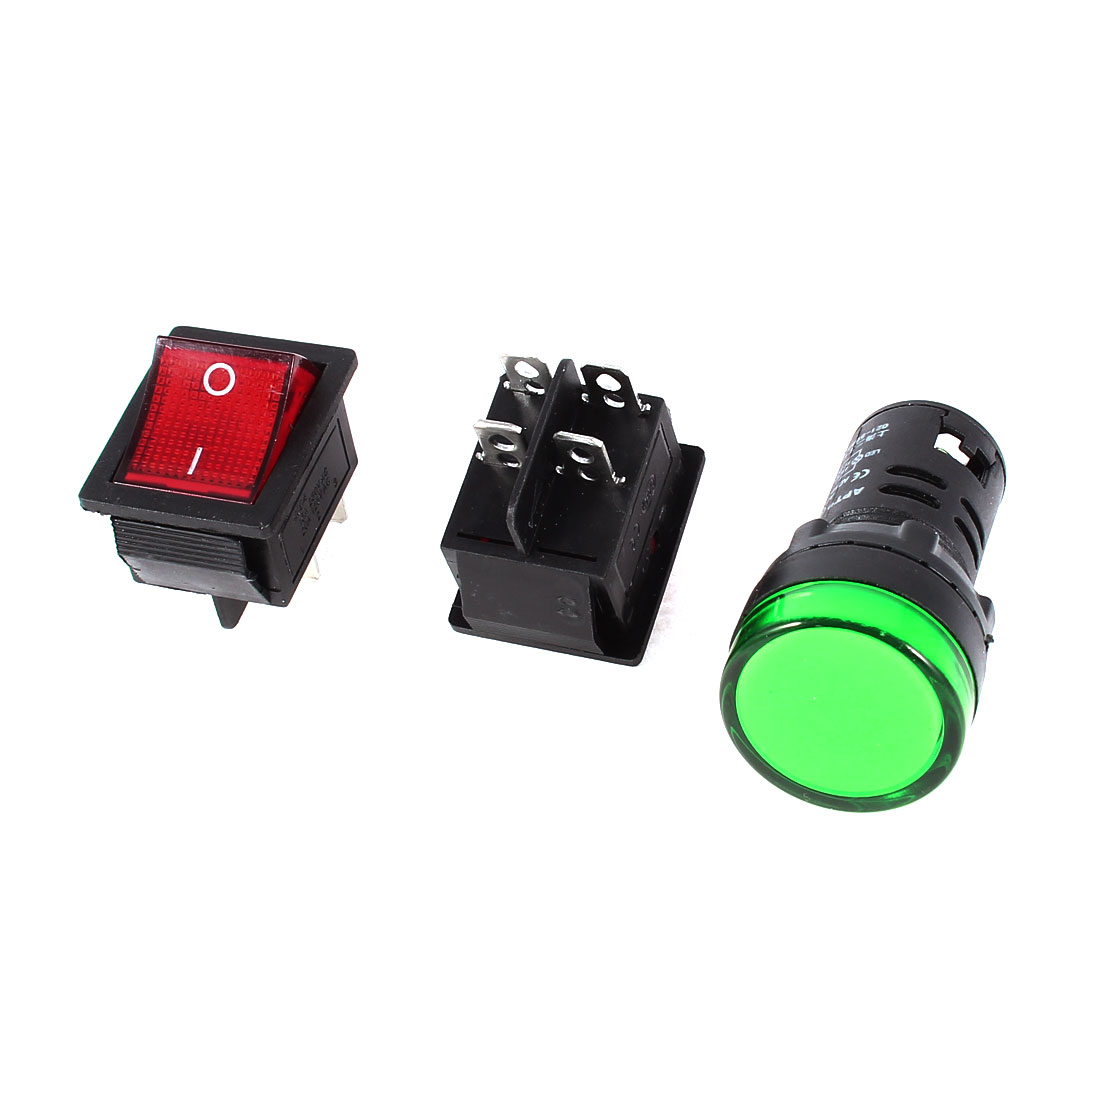 2x KCD4 DPST Red Light Rocker Switch + 1x AD16-22D/S Green Pilot LED Lamp DC 12V